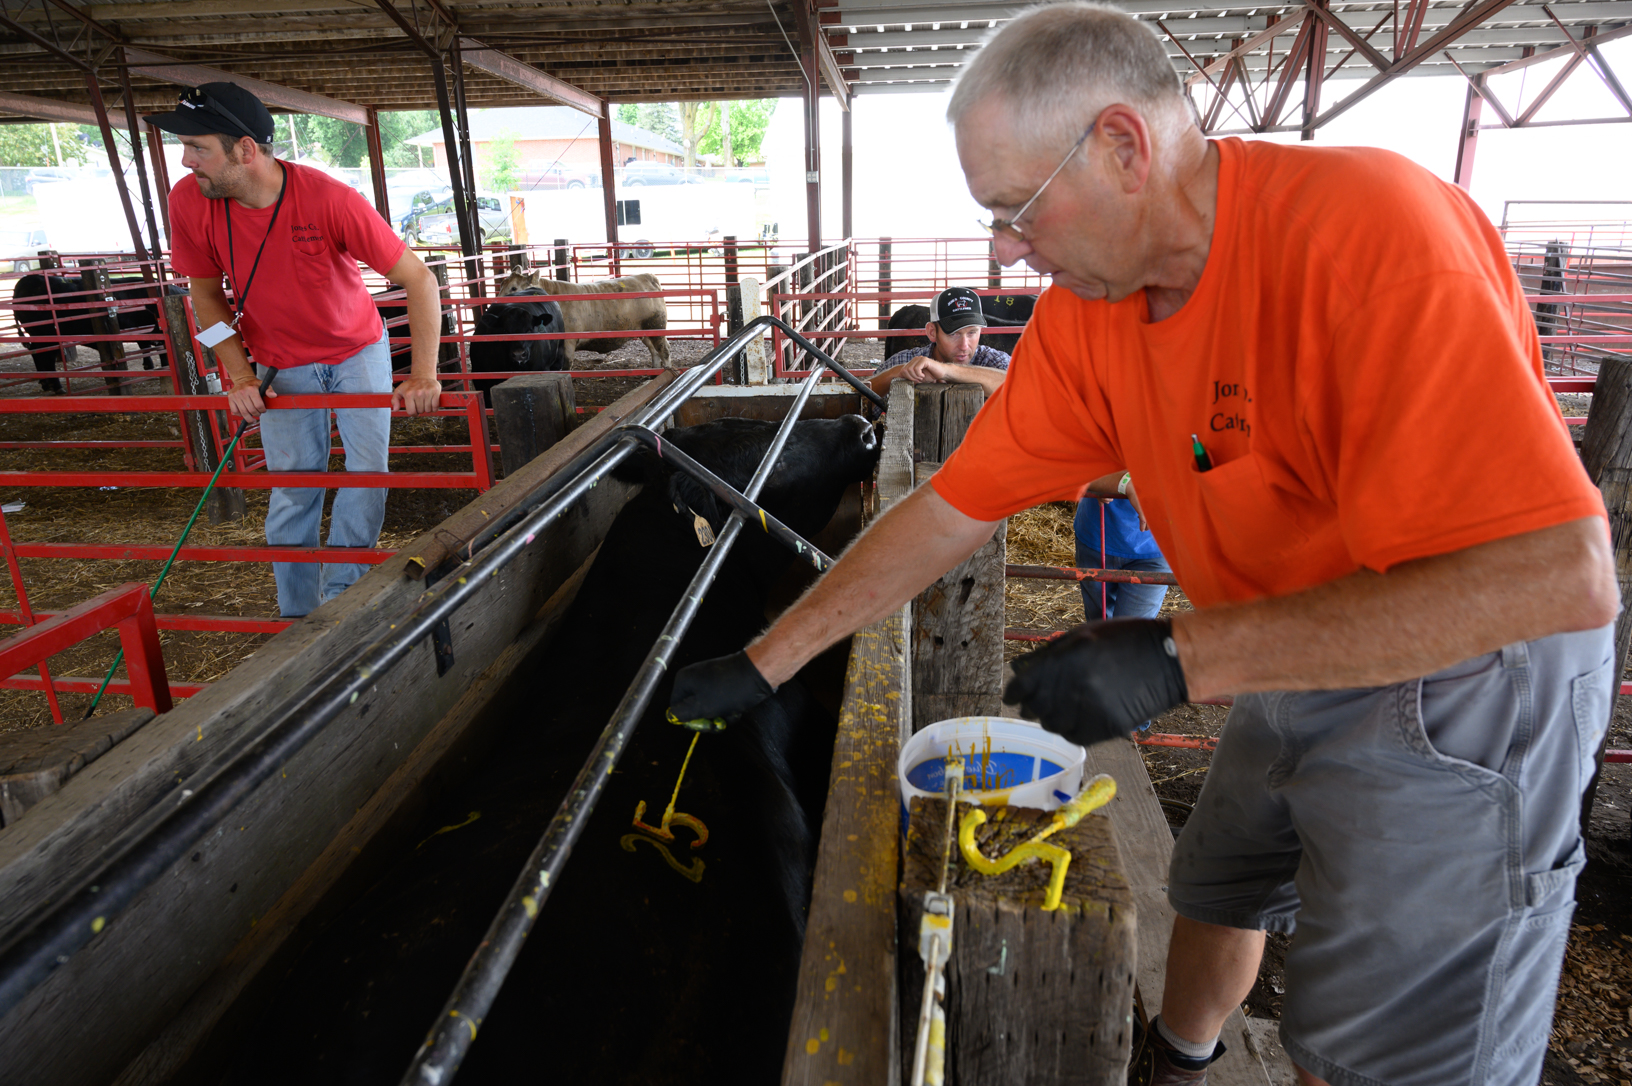 Ralph Hoch applies identifying numbers to cattle before the Prime Steer show at the Jones County Fair. The show has been a constant at the fair since 1949. Today the winning price of $1,000 is the same as it was in 1949. Photo credit: Joseph L. Murphy/Iowa Soybean Association